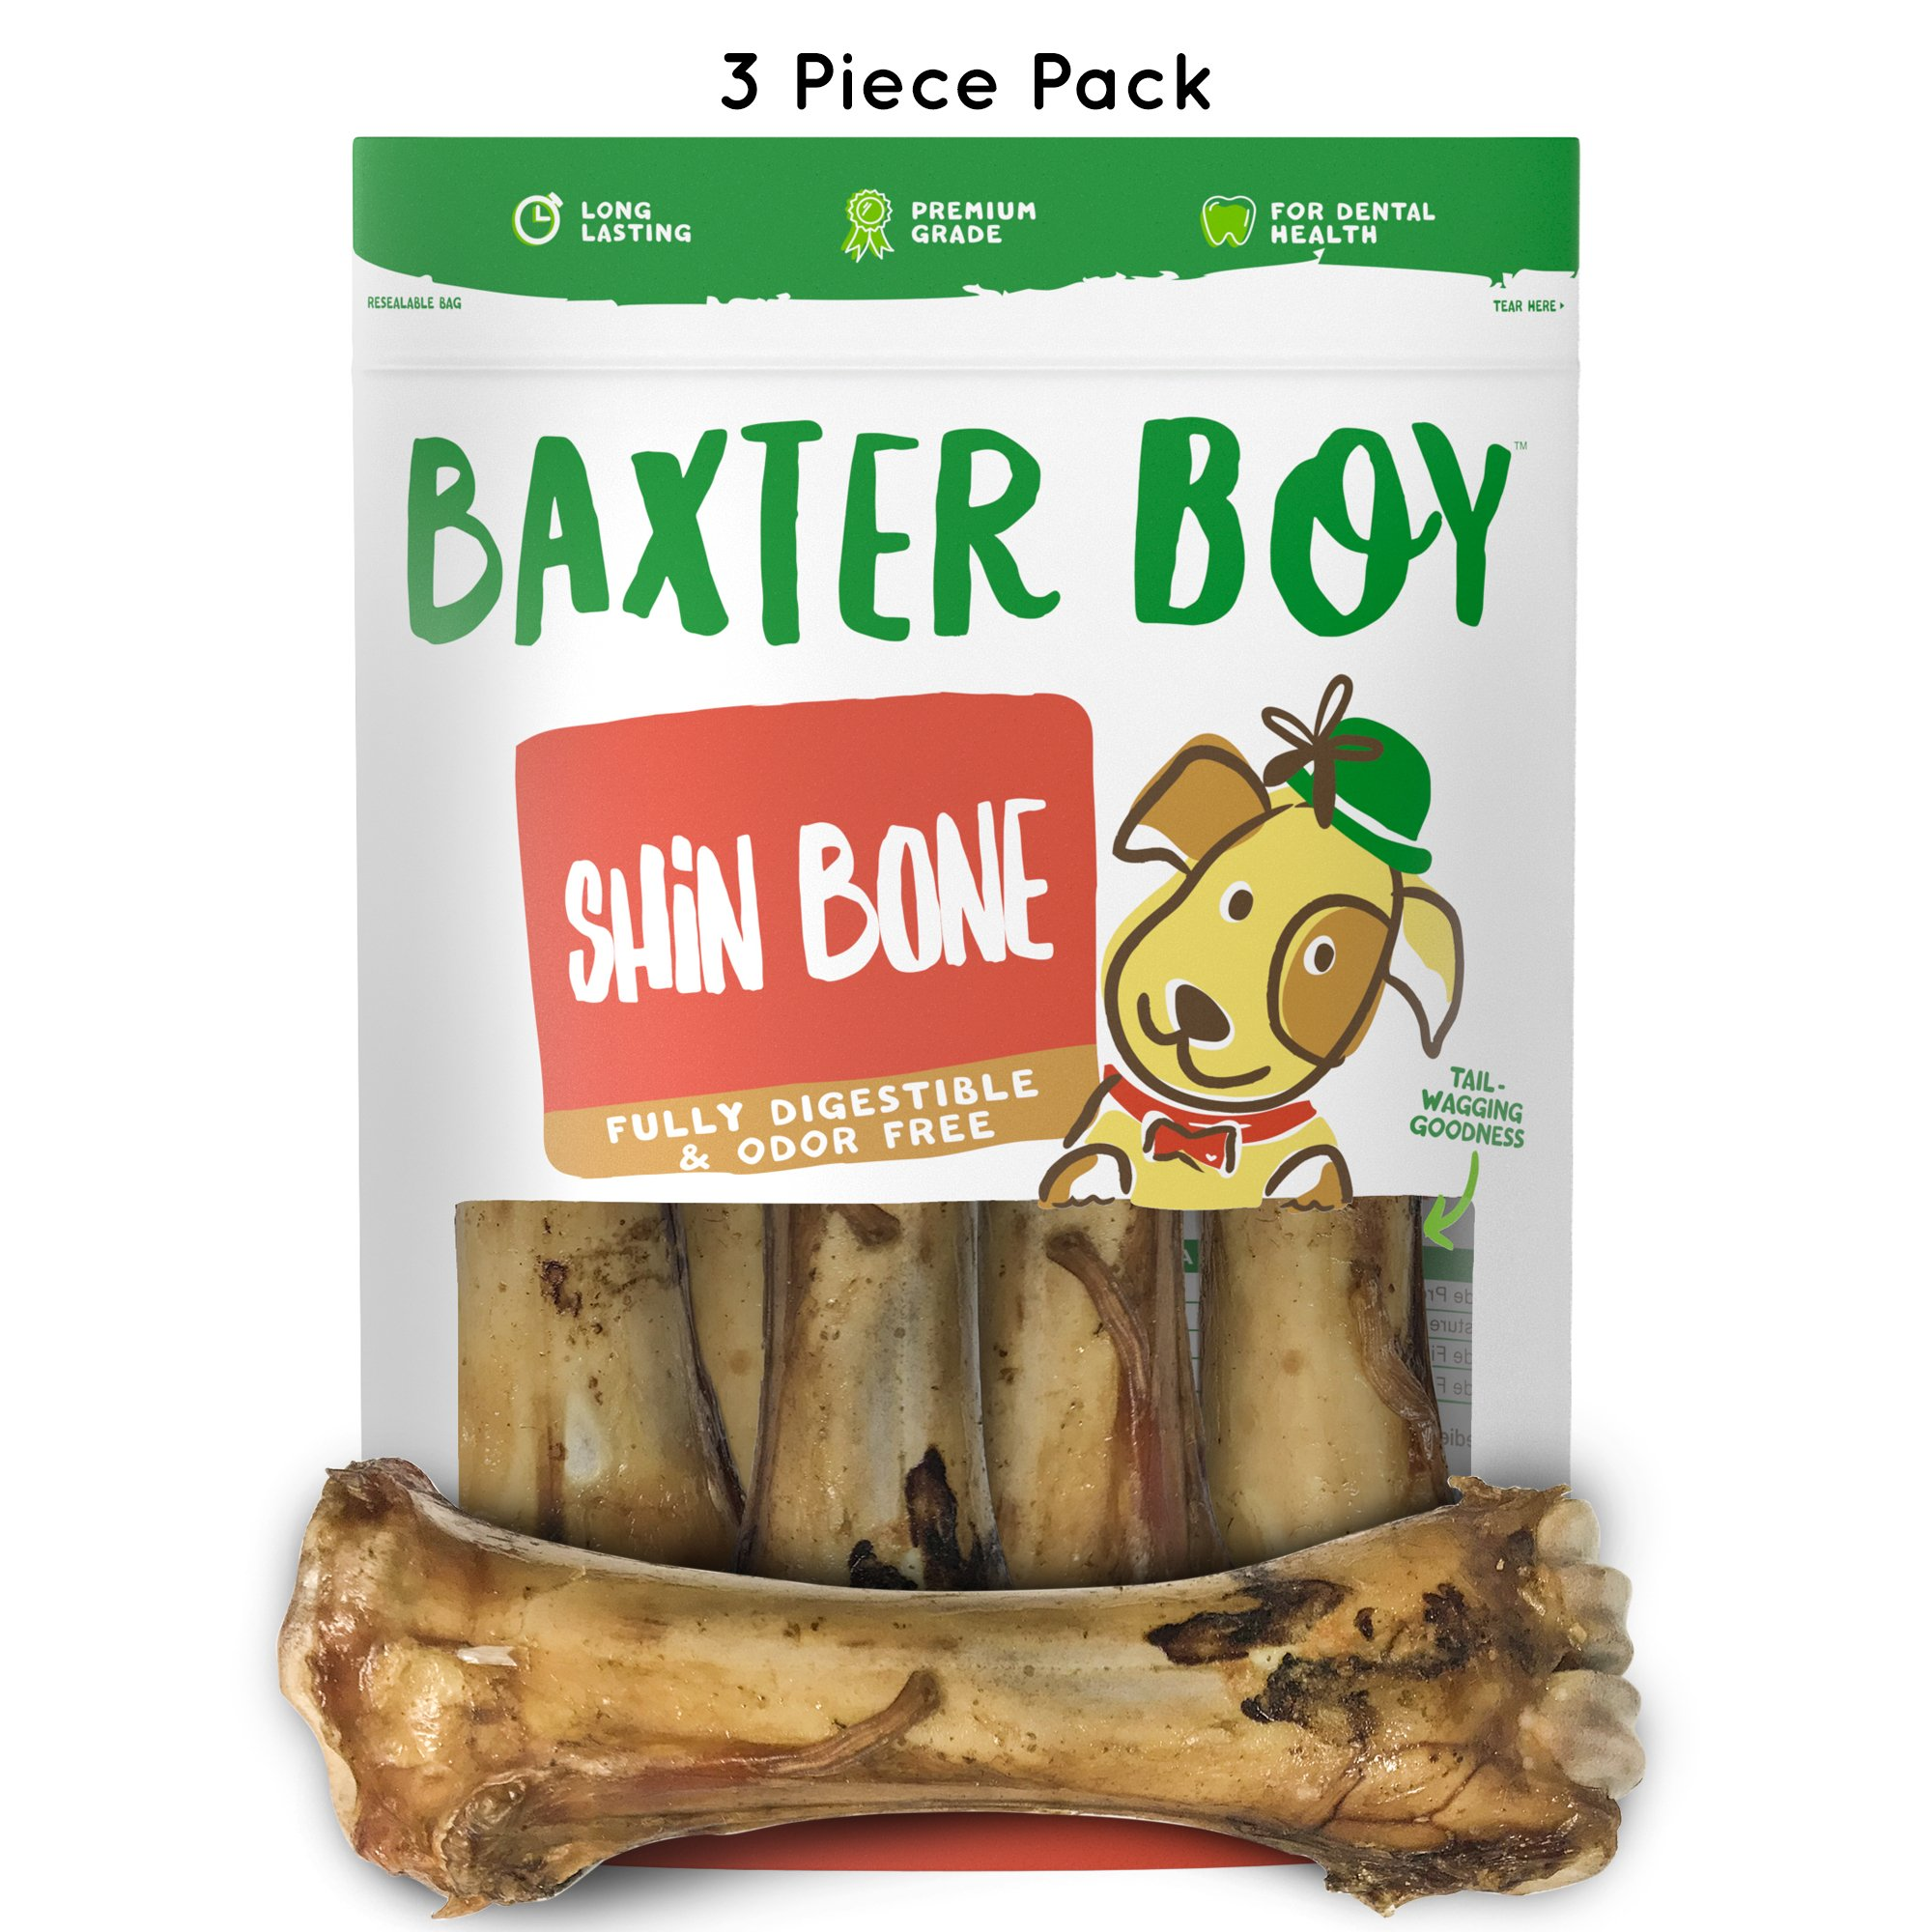 "Baxter Boy Premium Grade Roasted Meaty Beef Shin Bone Dog Treats (3 Pack) – 8"" Long Lasting All Natural Gourmet & Healthy Dog Bone Treat Chews – Tasty Smoked Beef Flavor by Baxter Boy (Image #1)"